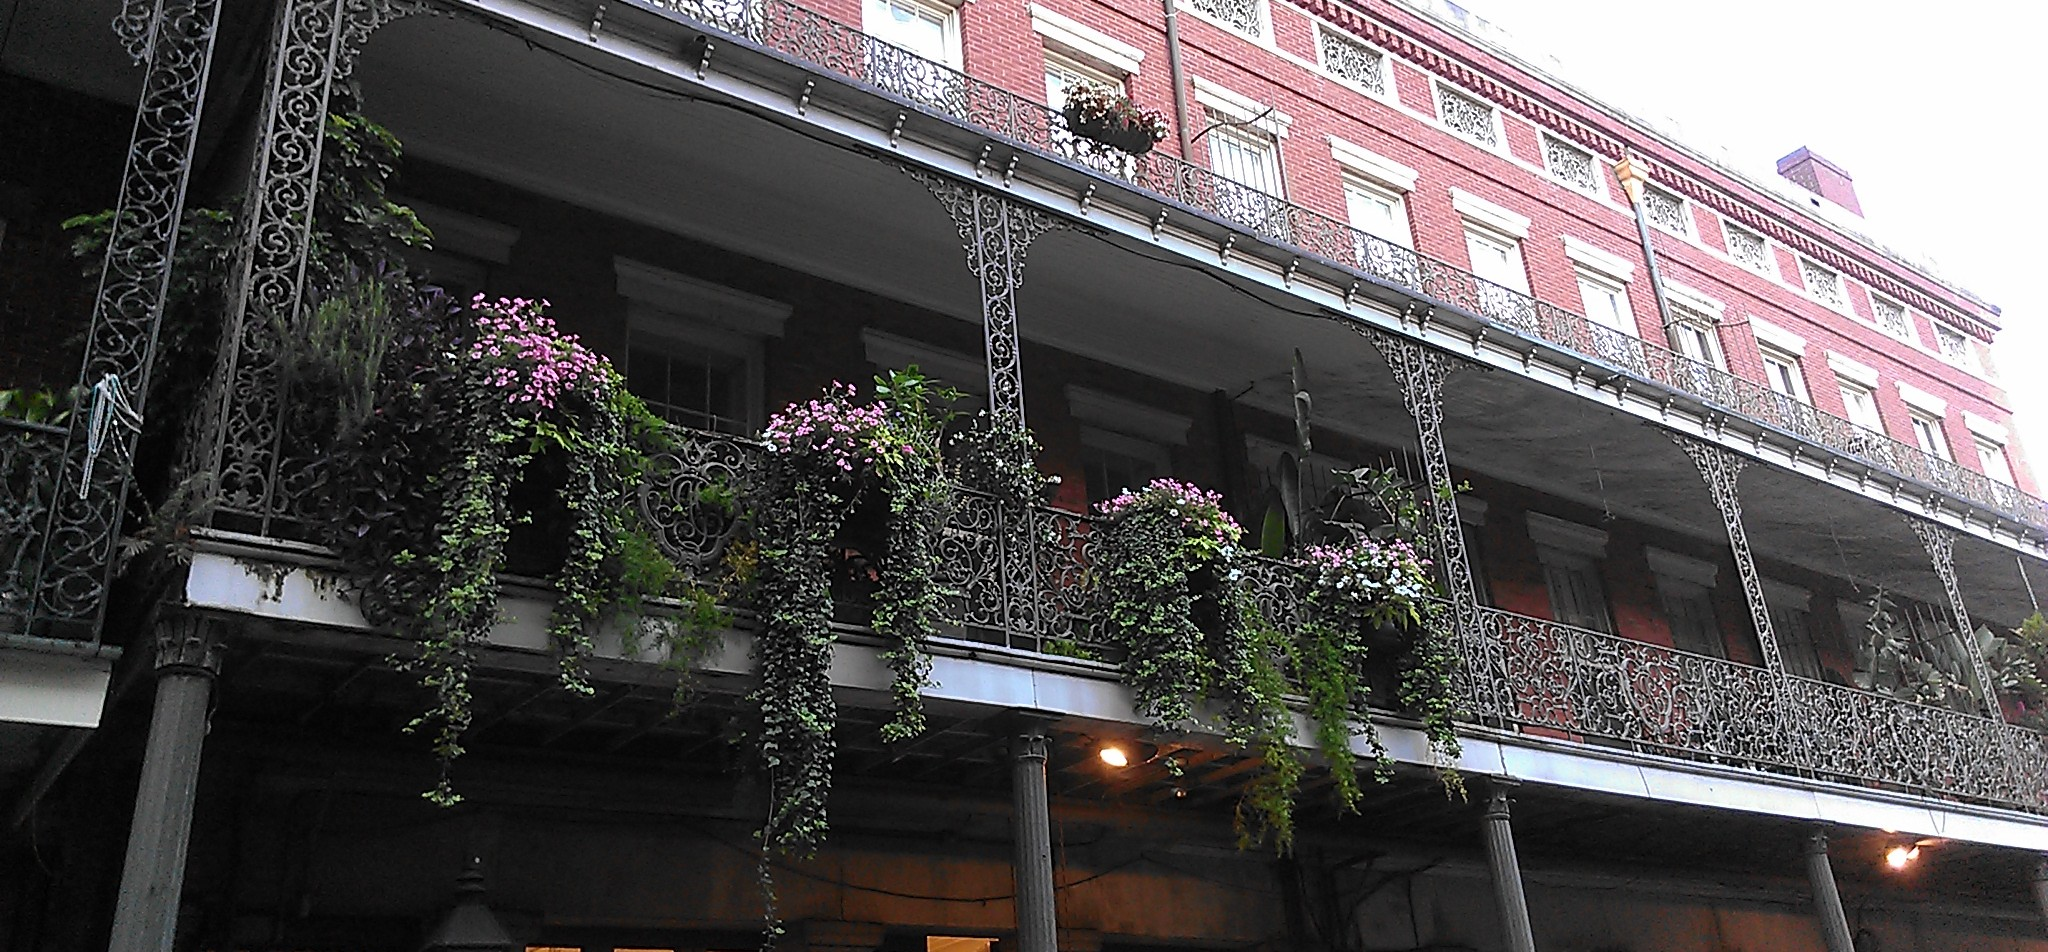 Good places to live in new orleans new in nola for Nice places to live